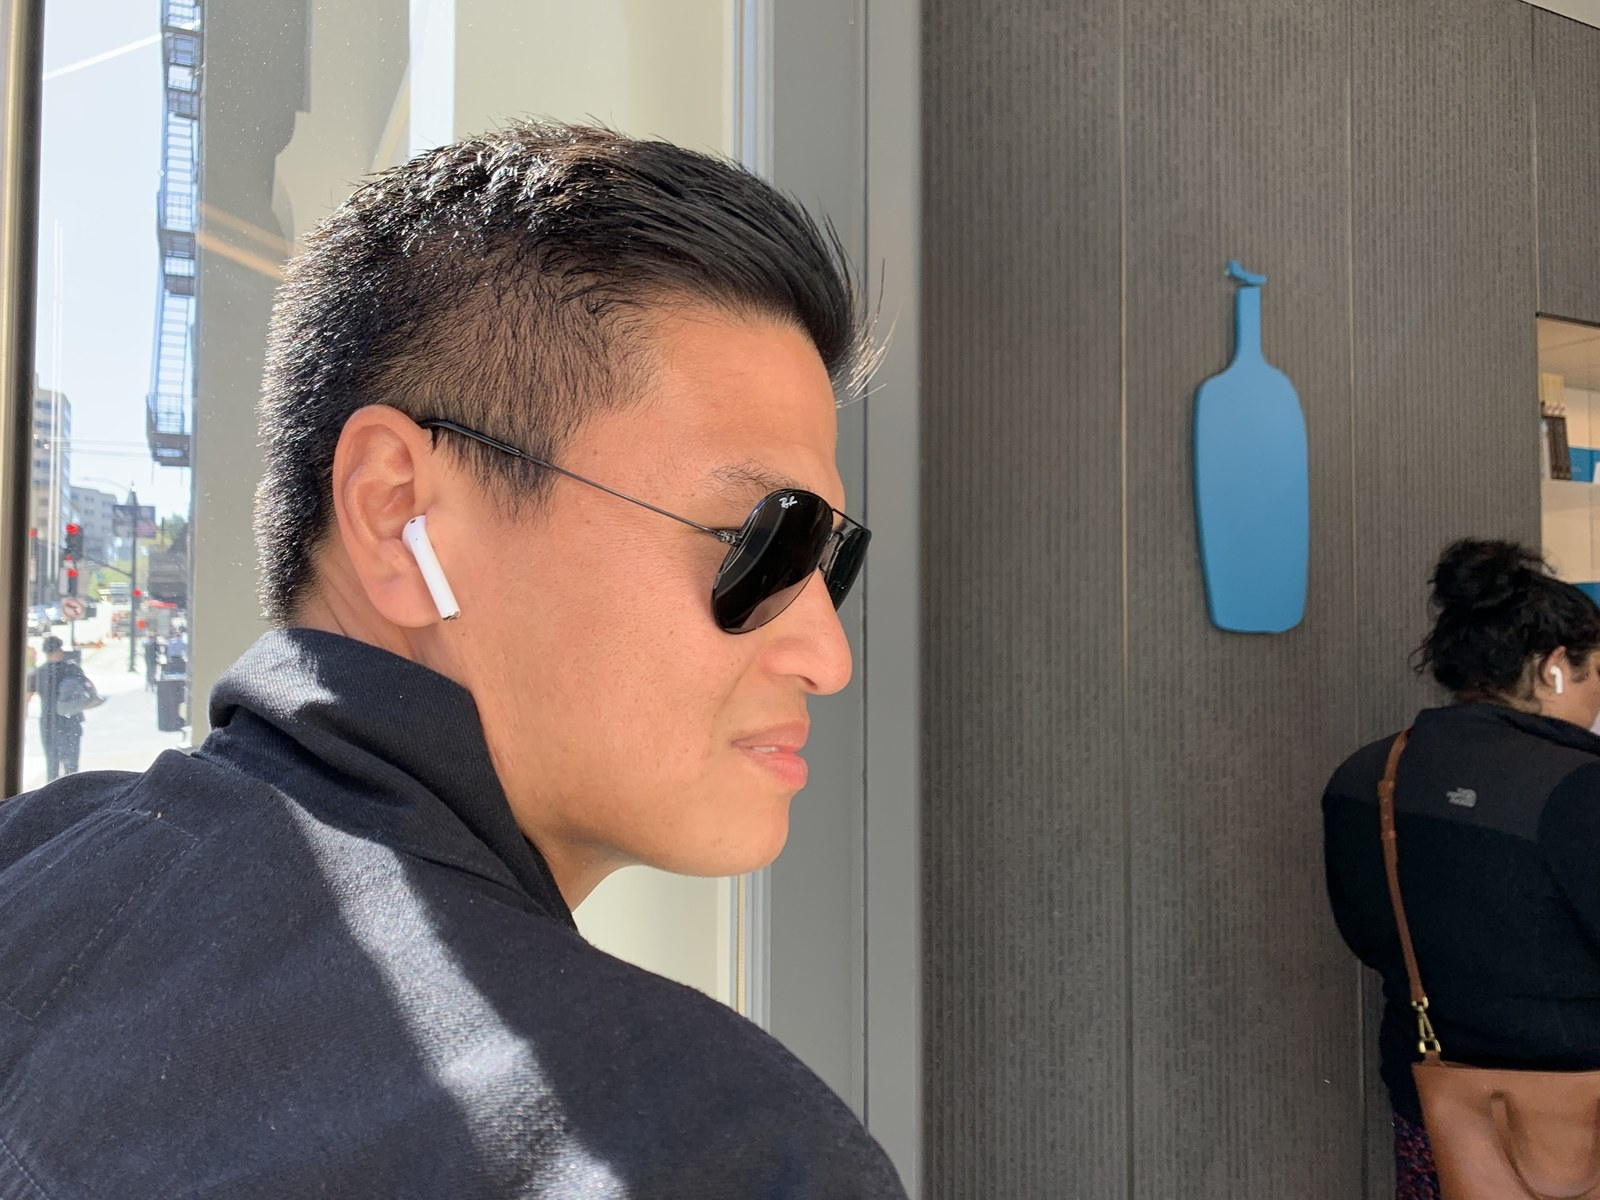 People Wearing AirPods Are Making Things Awkward For Everyone Else